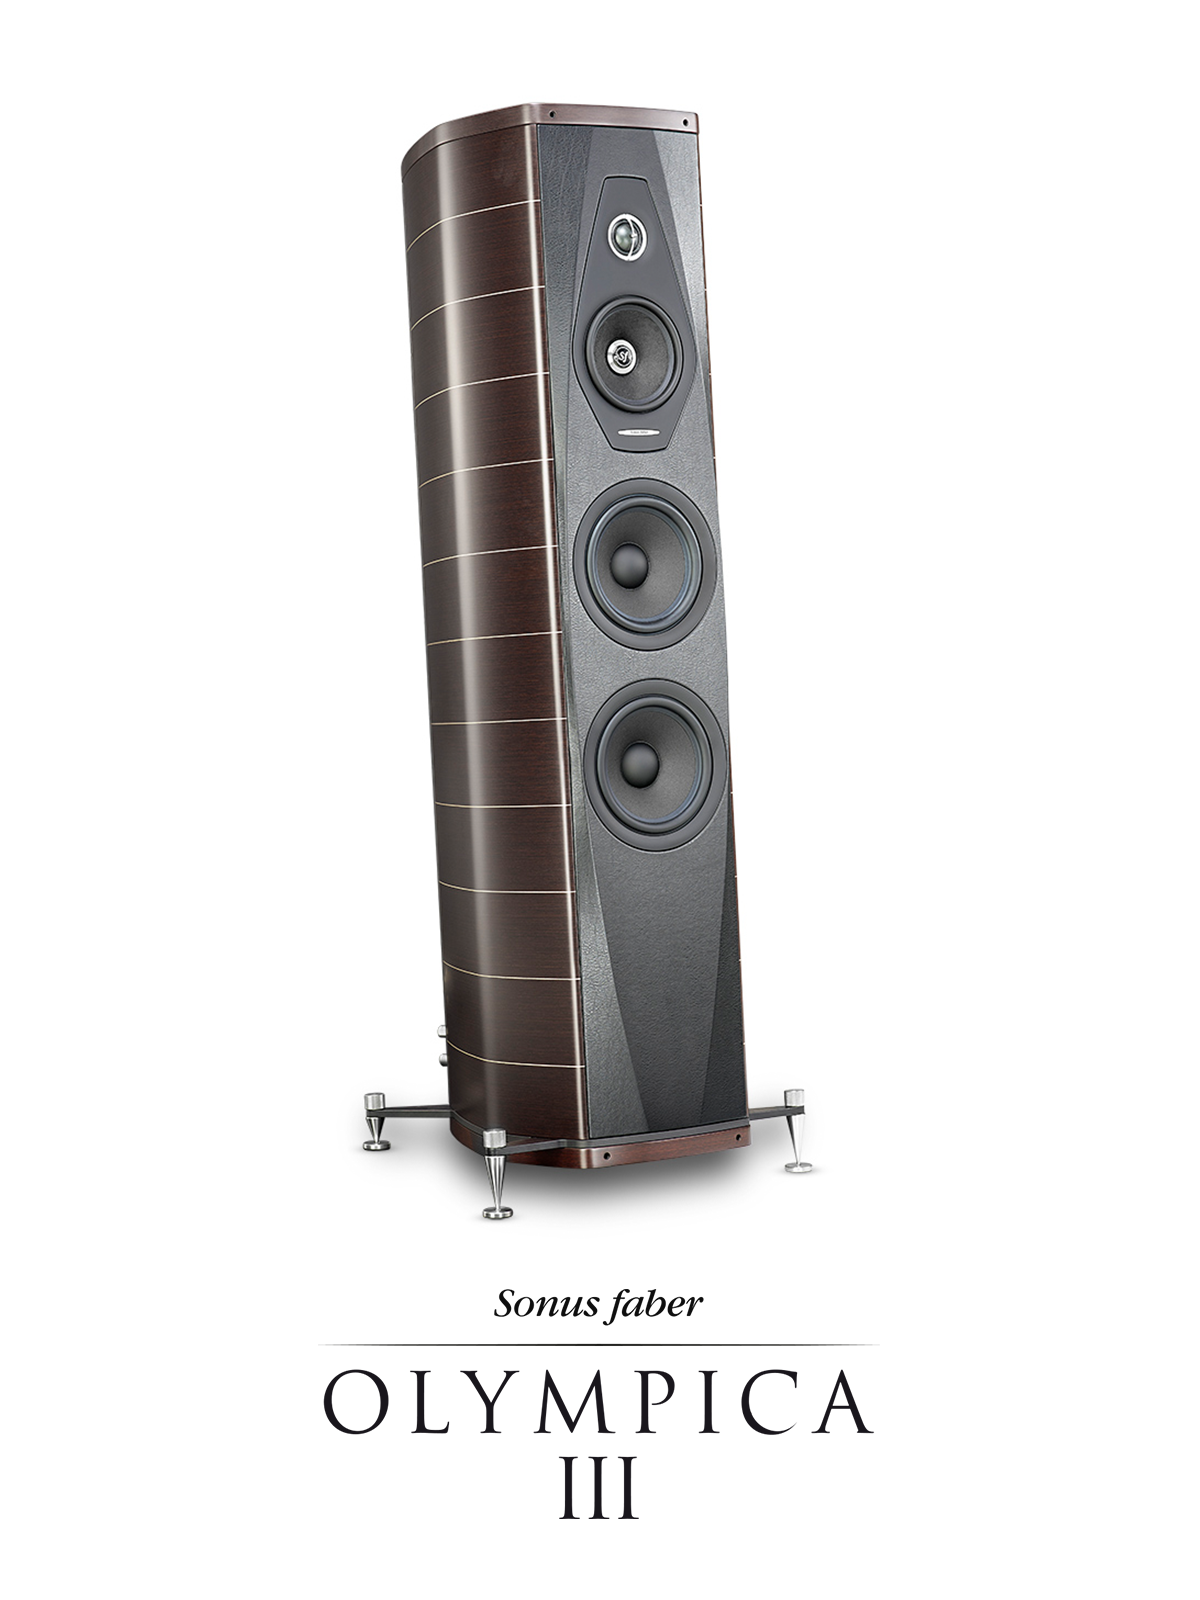 Acoustic loudspeakers of the best quality in the Olympic